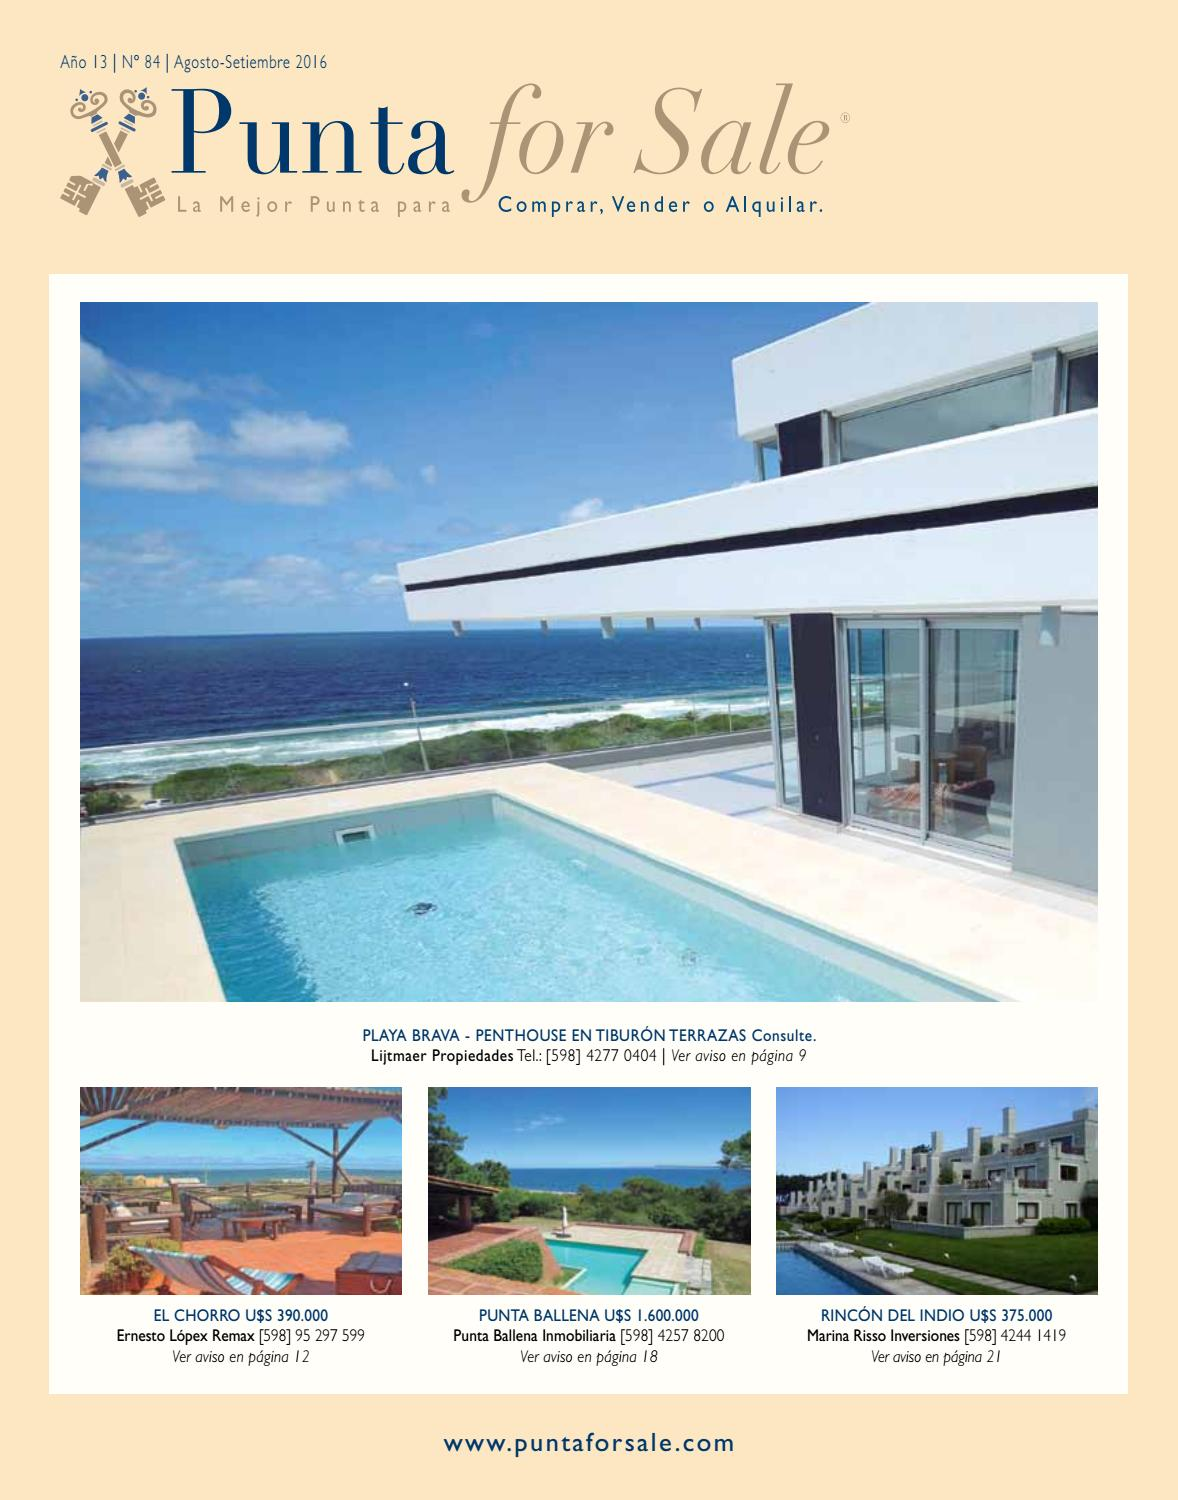 Revista de Real Estate Punta For Sale, edición #84 Agosto-Setiembre 2016